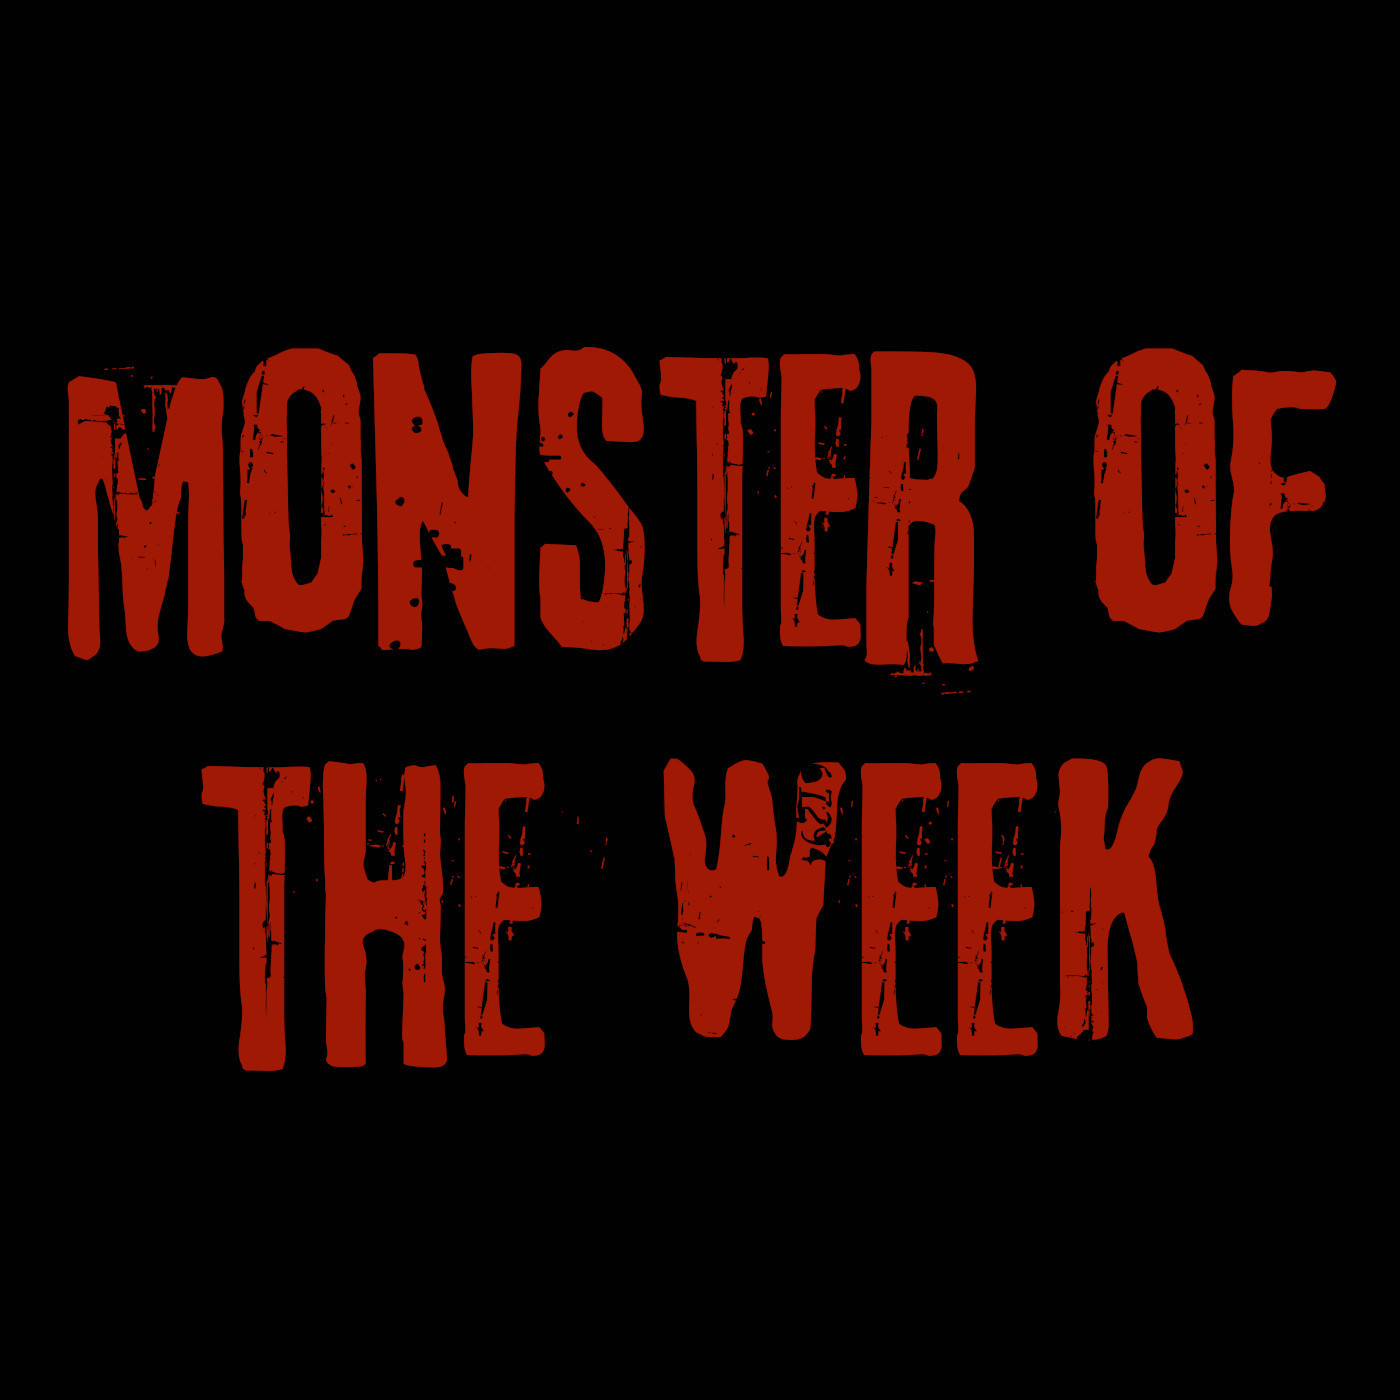 [Monster of the Week] Saison 01 | Introduction et présentation des personnages